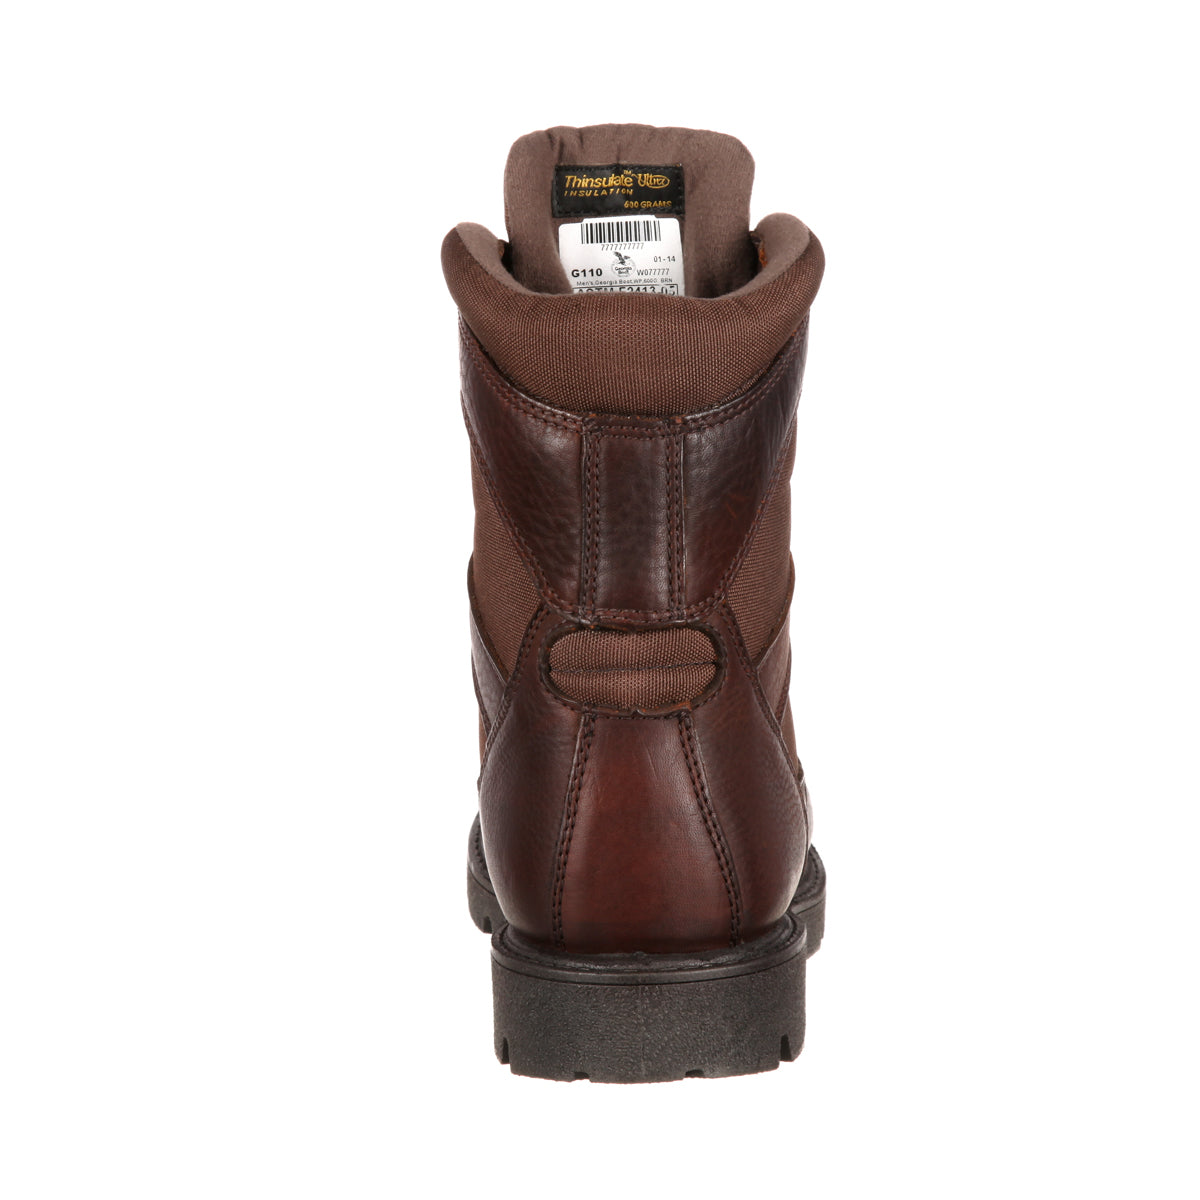 b14d20a0a69 Georgia Homeland Mens Brown Leather Insulated Waterproof Work Boots ...